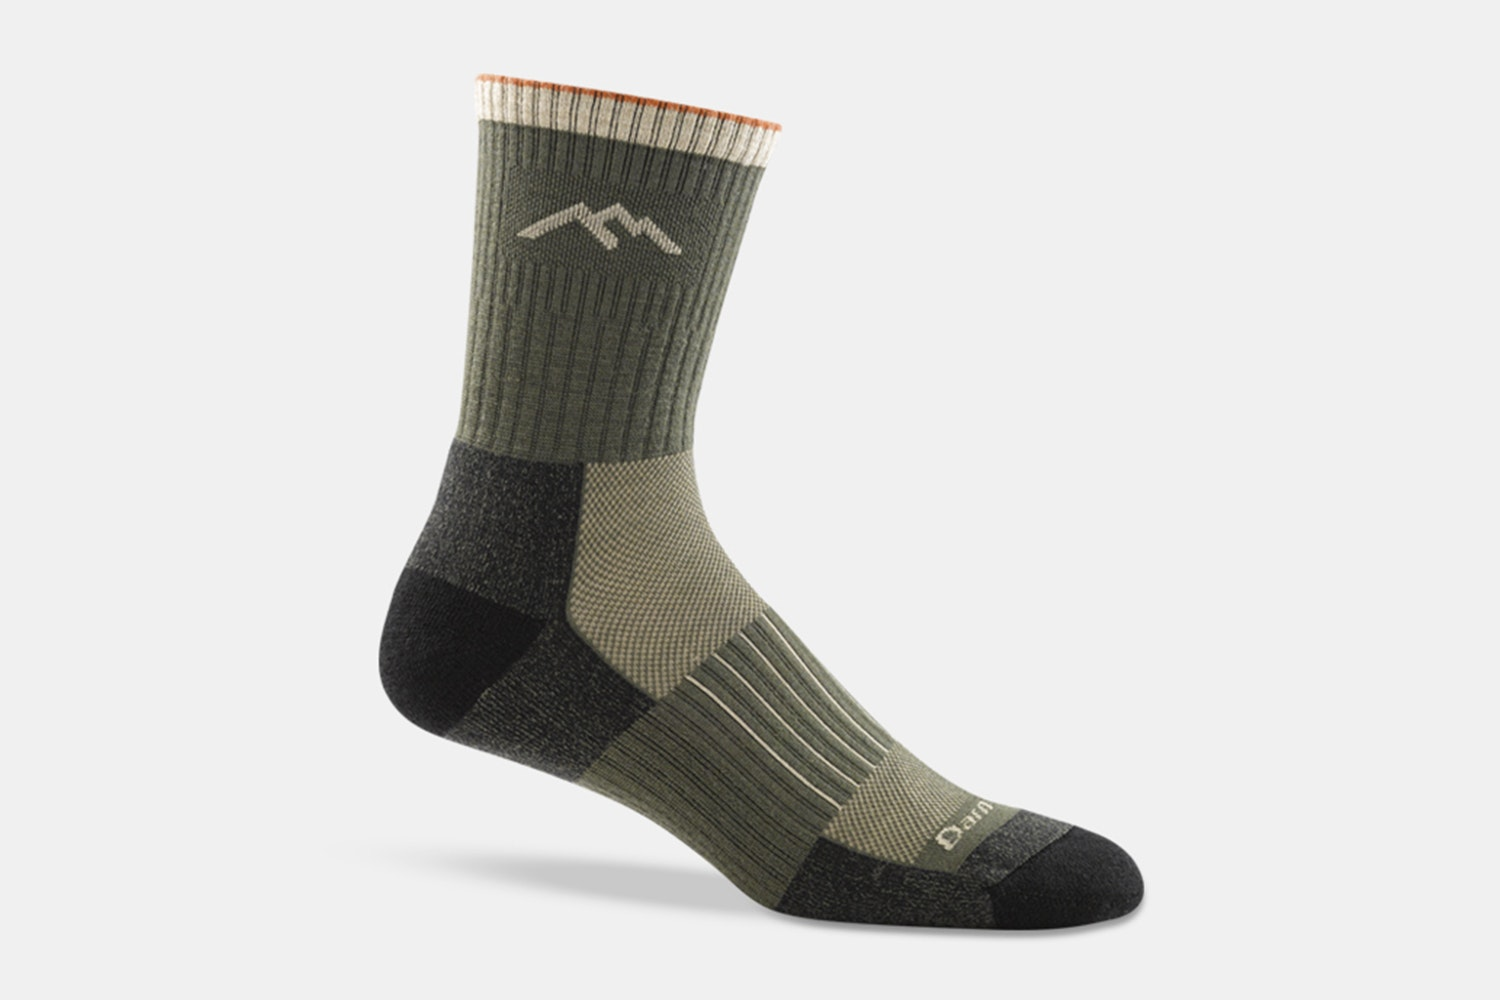 Darn Tough Hunter Socks (2-Pack)